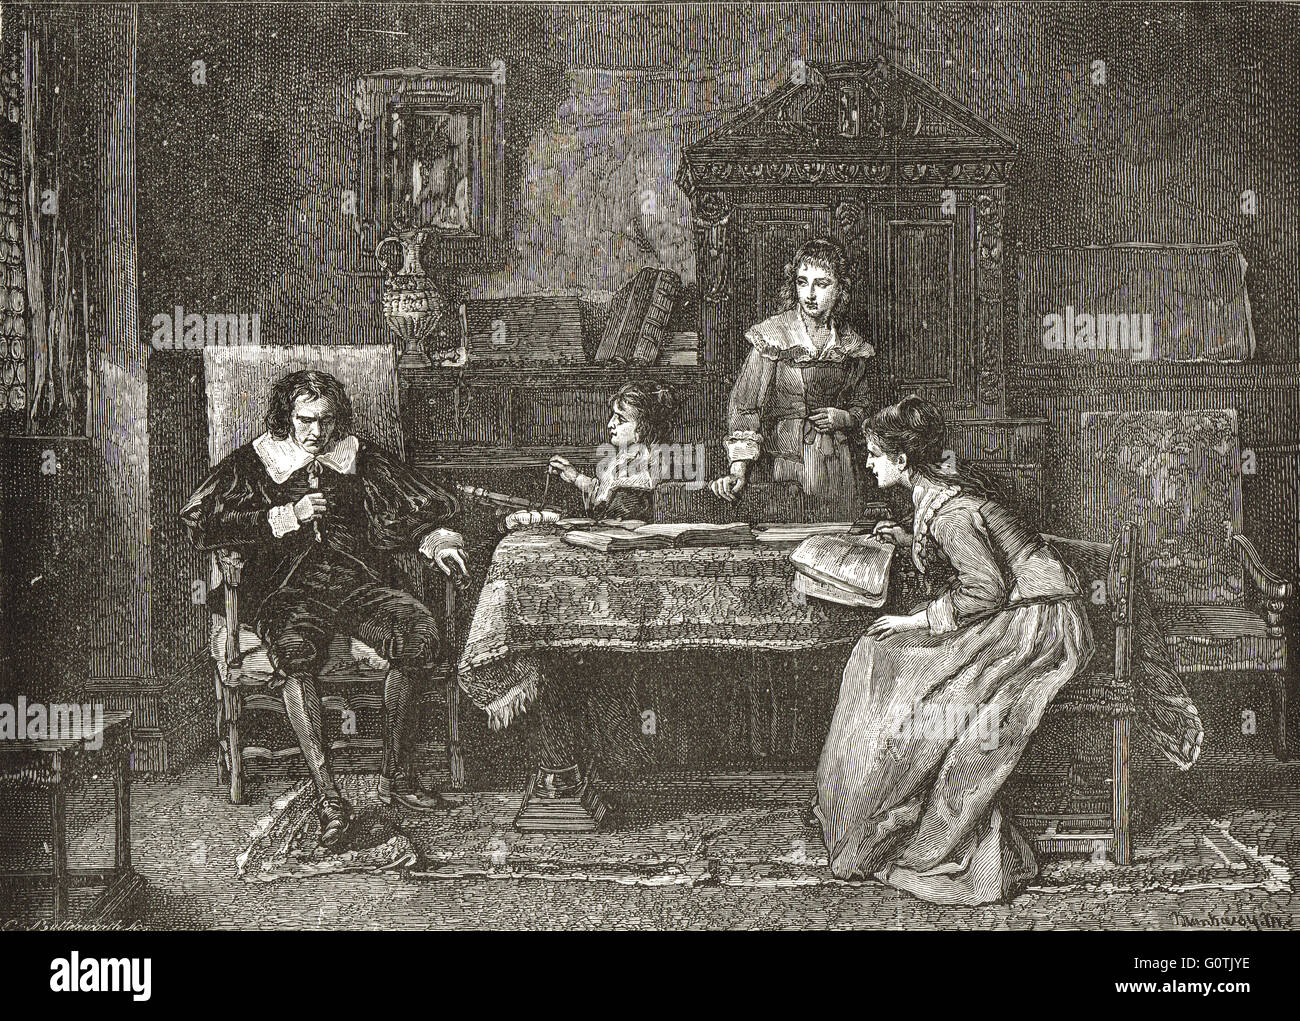 A blind John Milton dictating to his Daughters - Stock Image